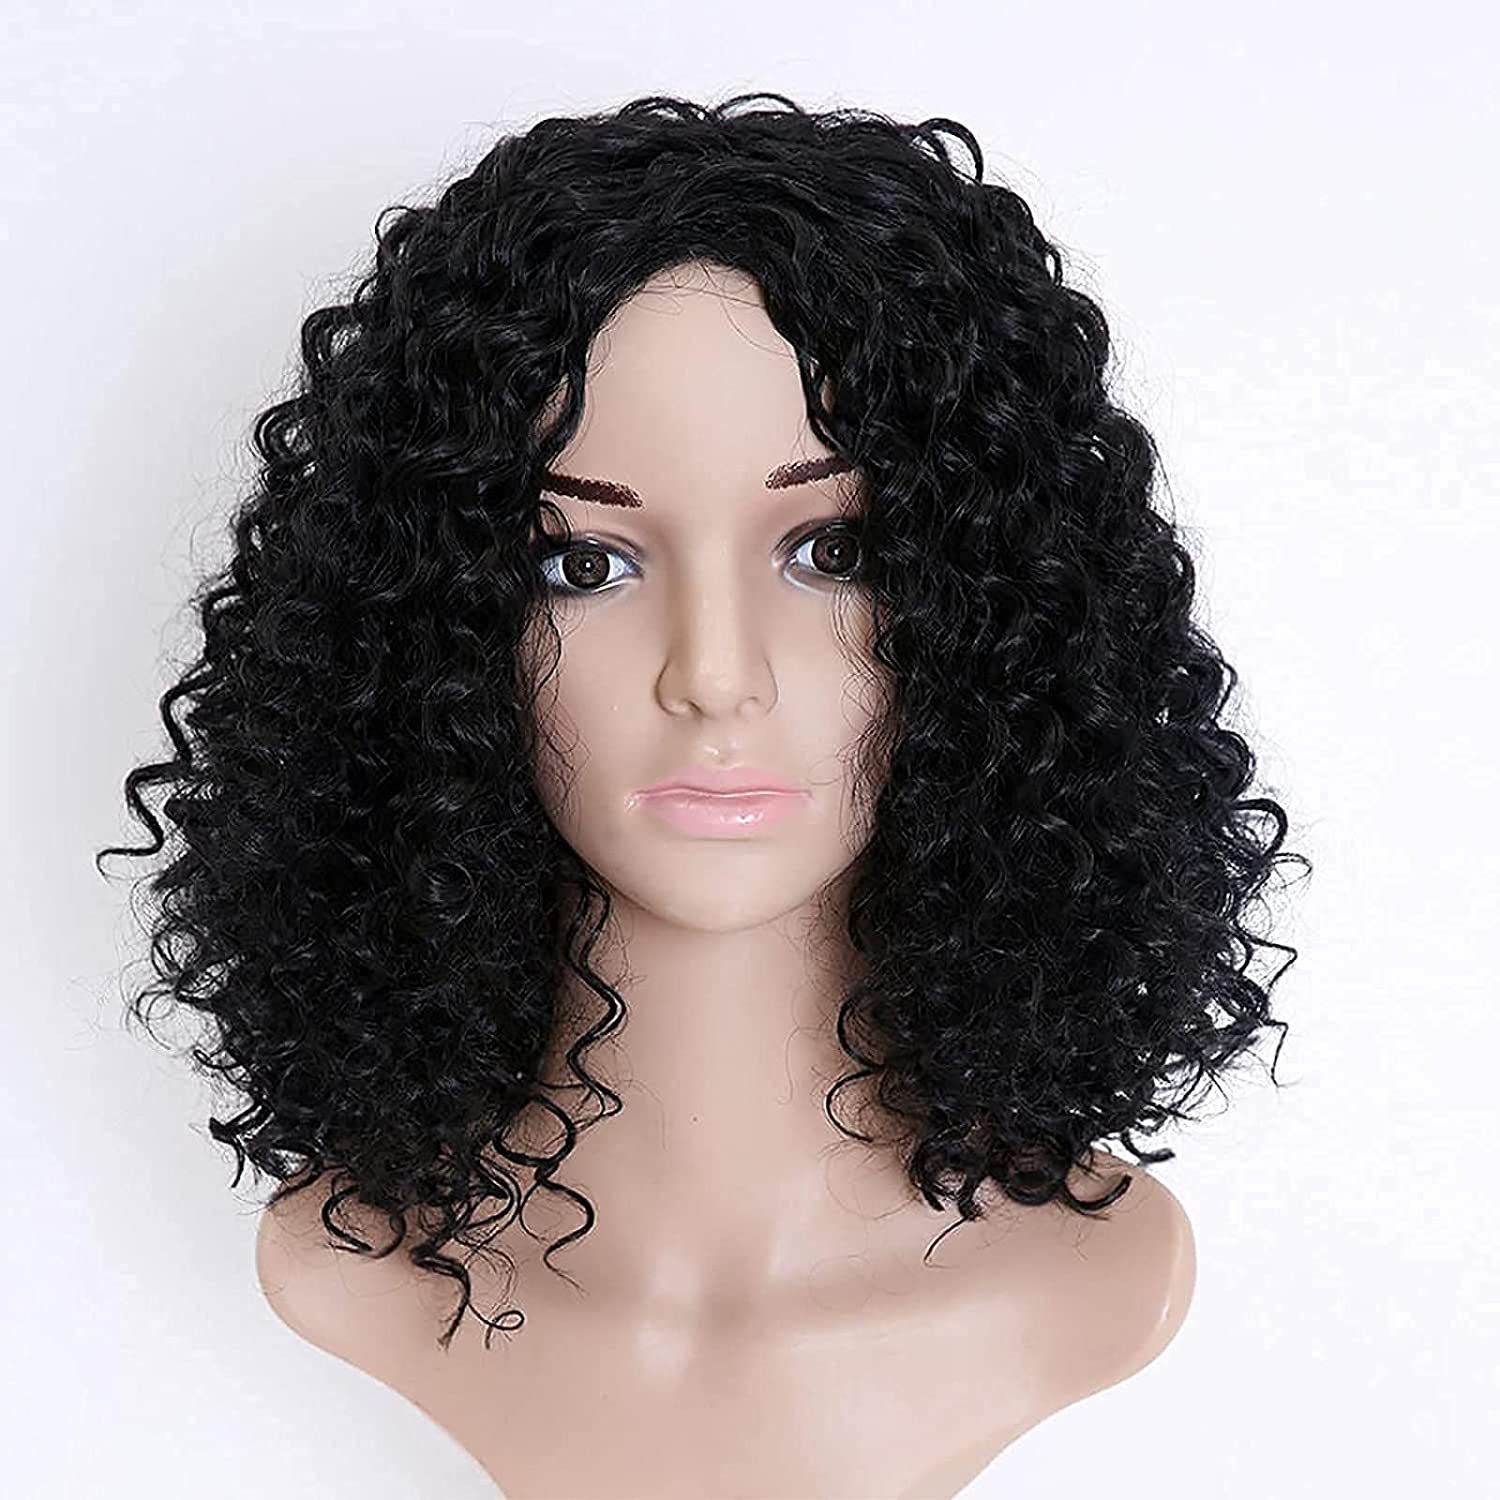 Cosplay Curly Afro Wig 5 ☆ very popular with Fashion Bangs Blac Shoulder Length